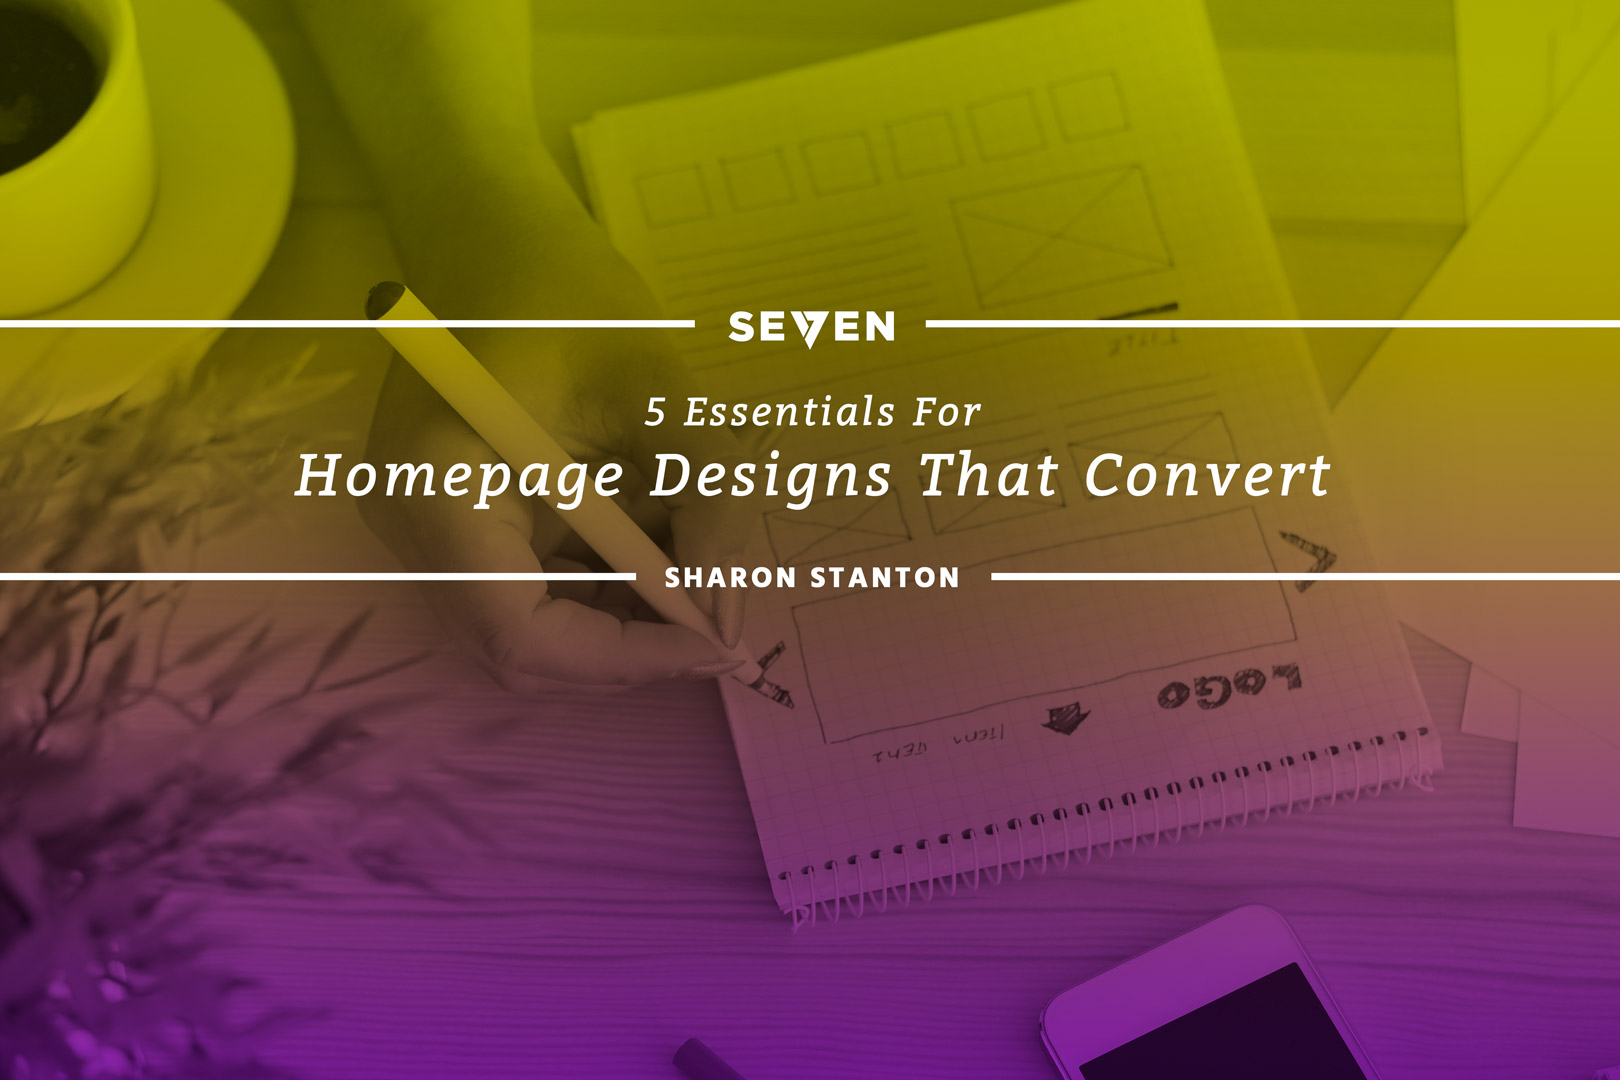 5 Essentials for Homepage Designs That Convert